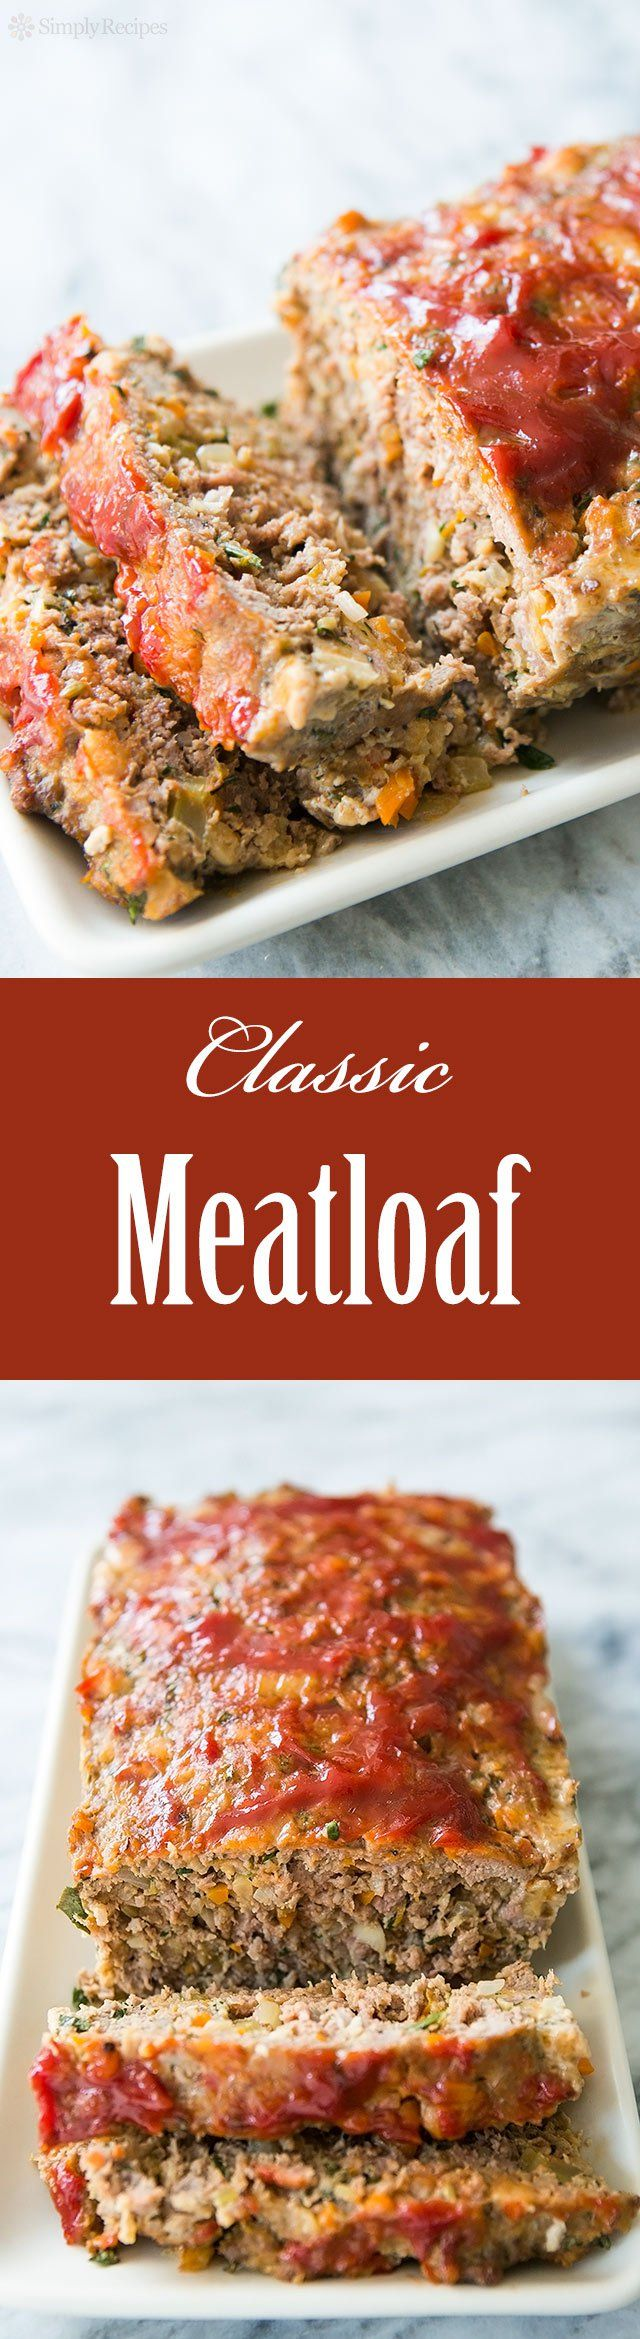 Classic Meatloaf Recipe With Images Classic Meatloaf Recipe Homemade Meatloaf Traditional Meatloaf